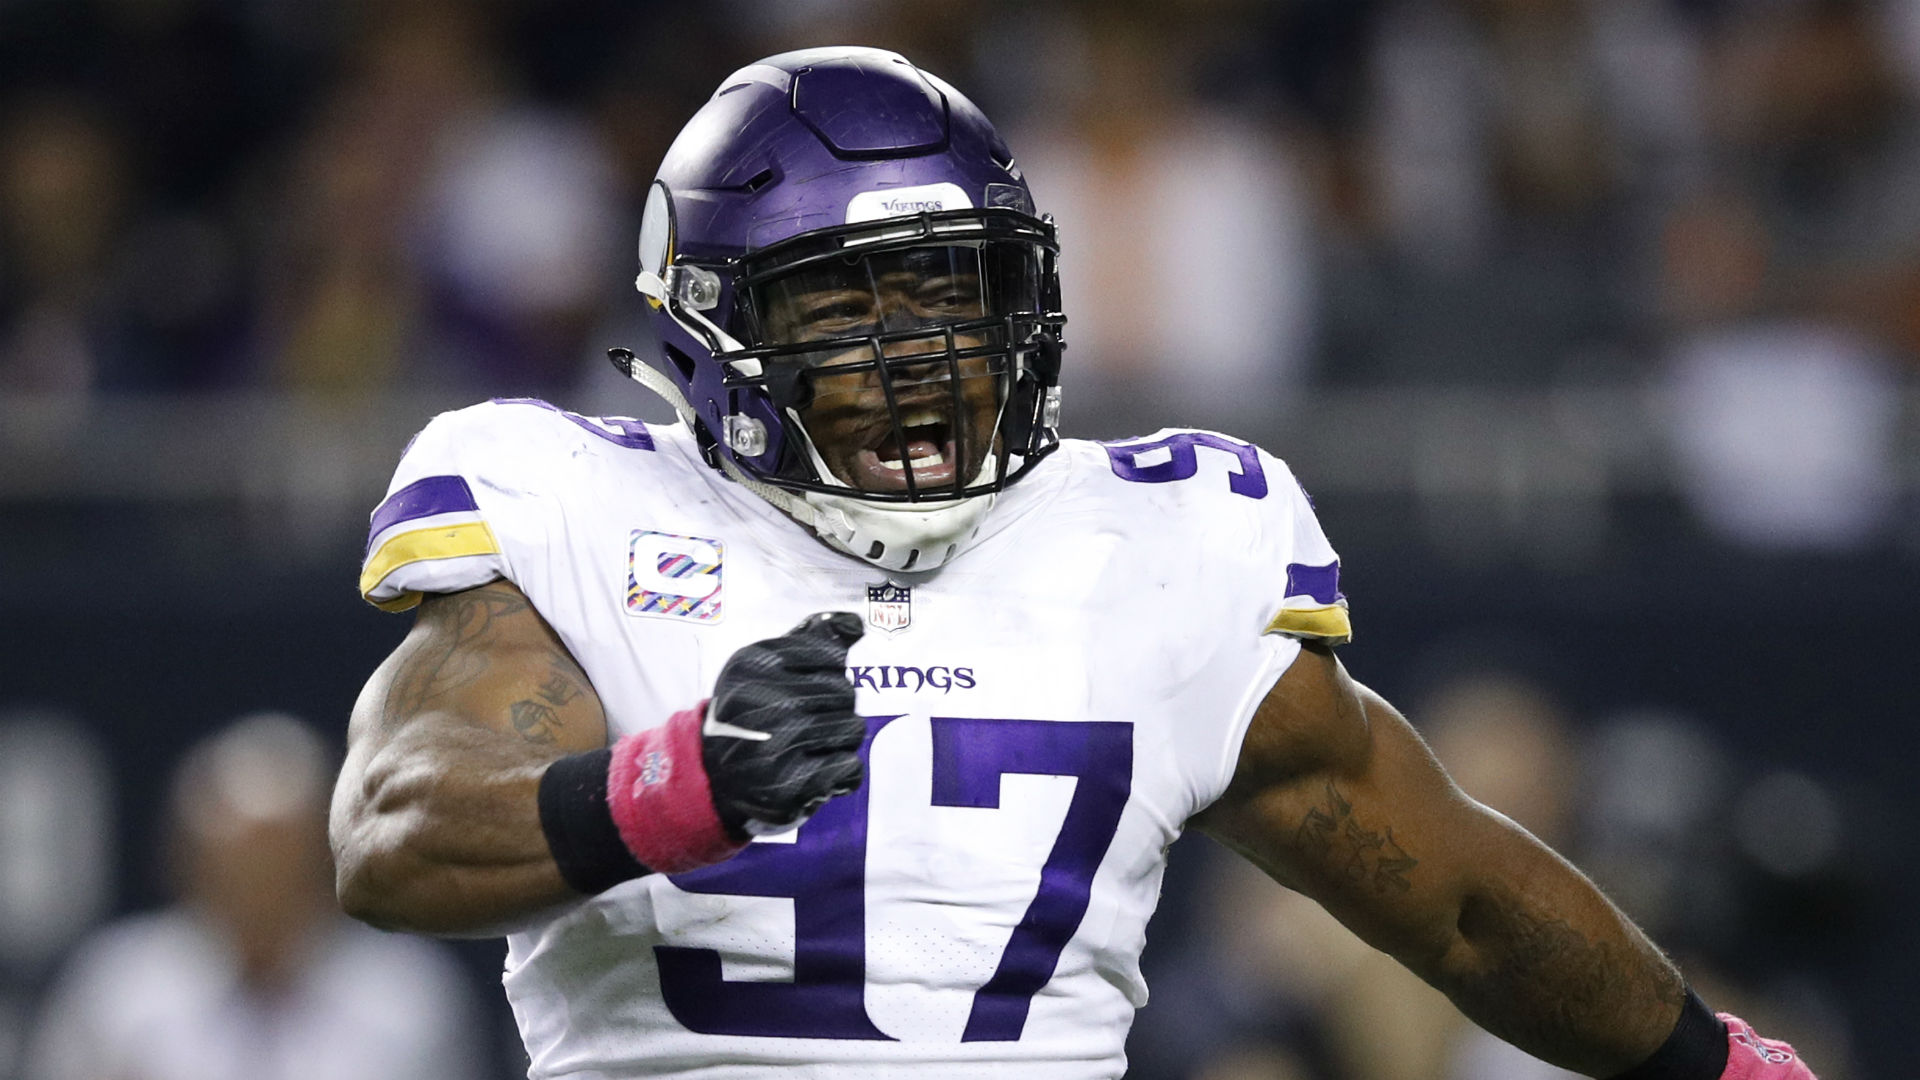 Vikings' Everson Griffen announces birth of baby on shirt